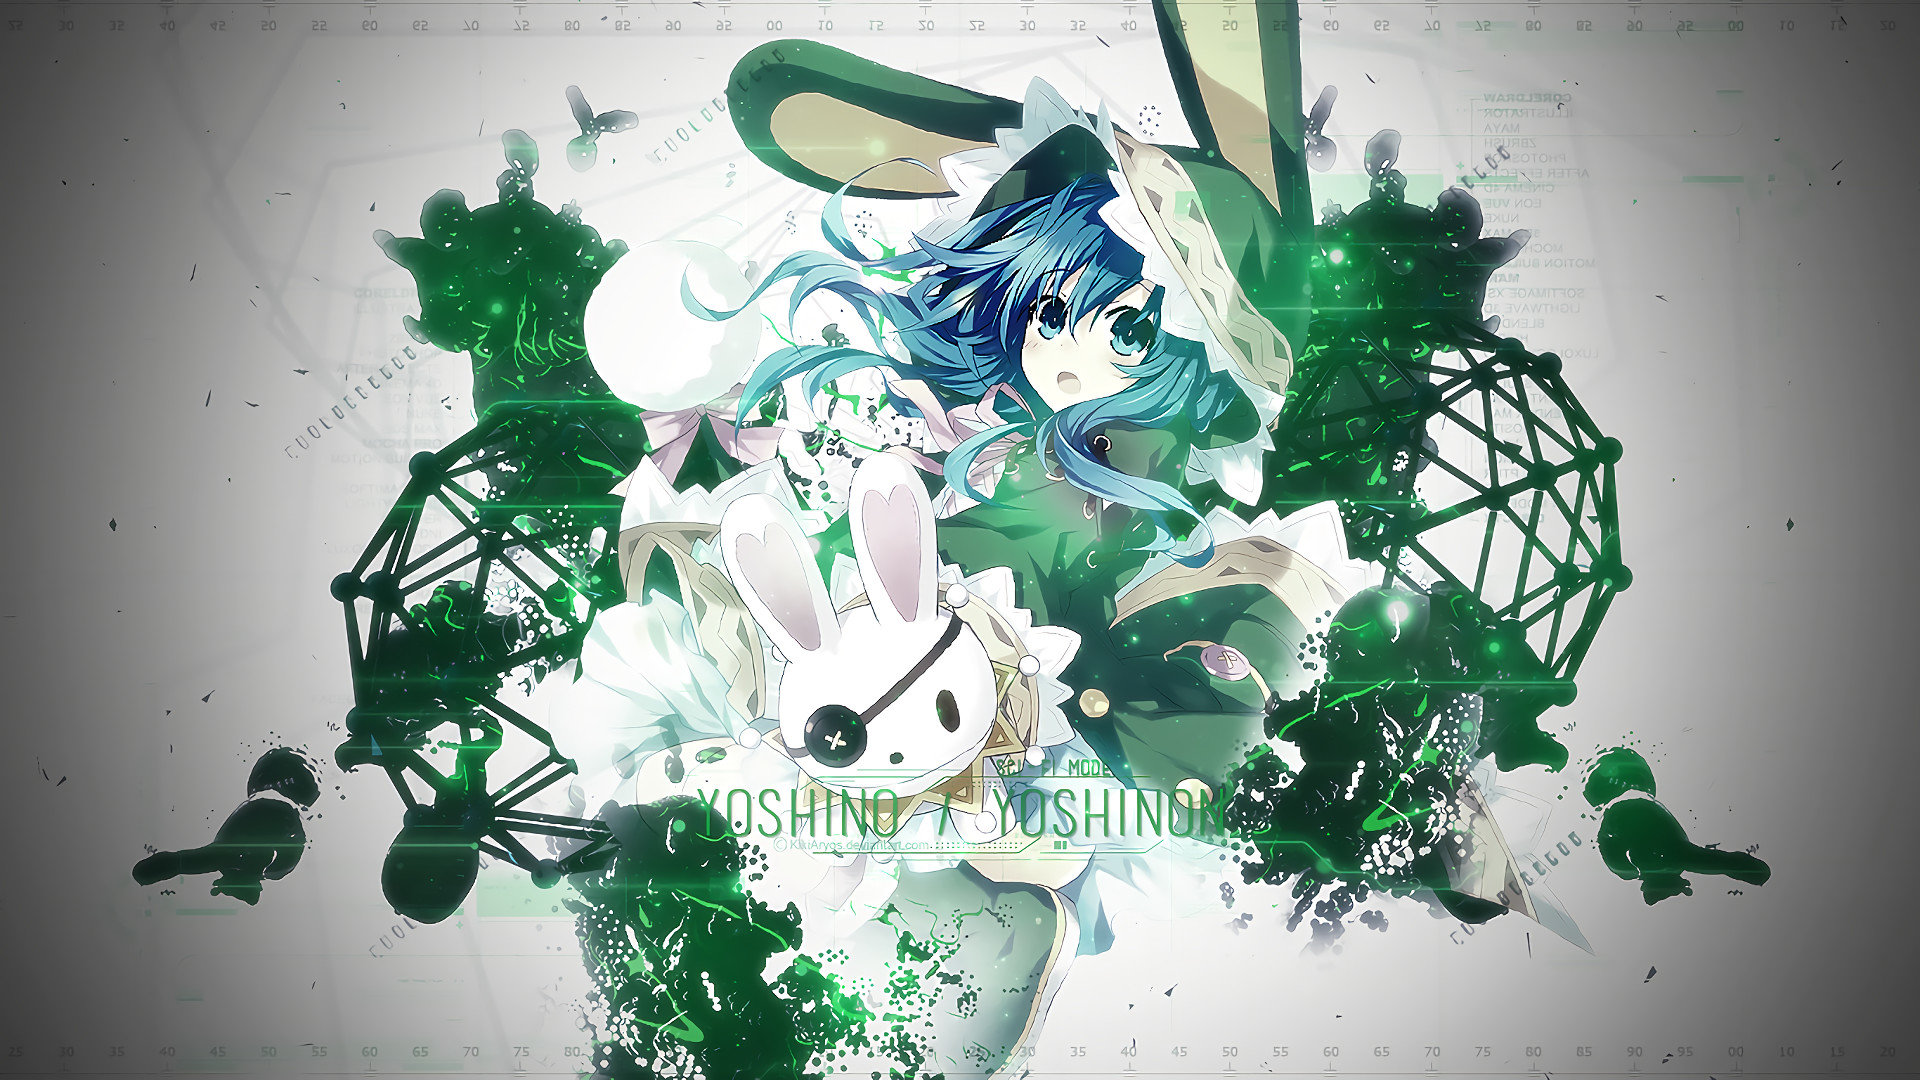 Download full hd Yoshino (Date A Live) desktop wallpaper ID:463745 for free